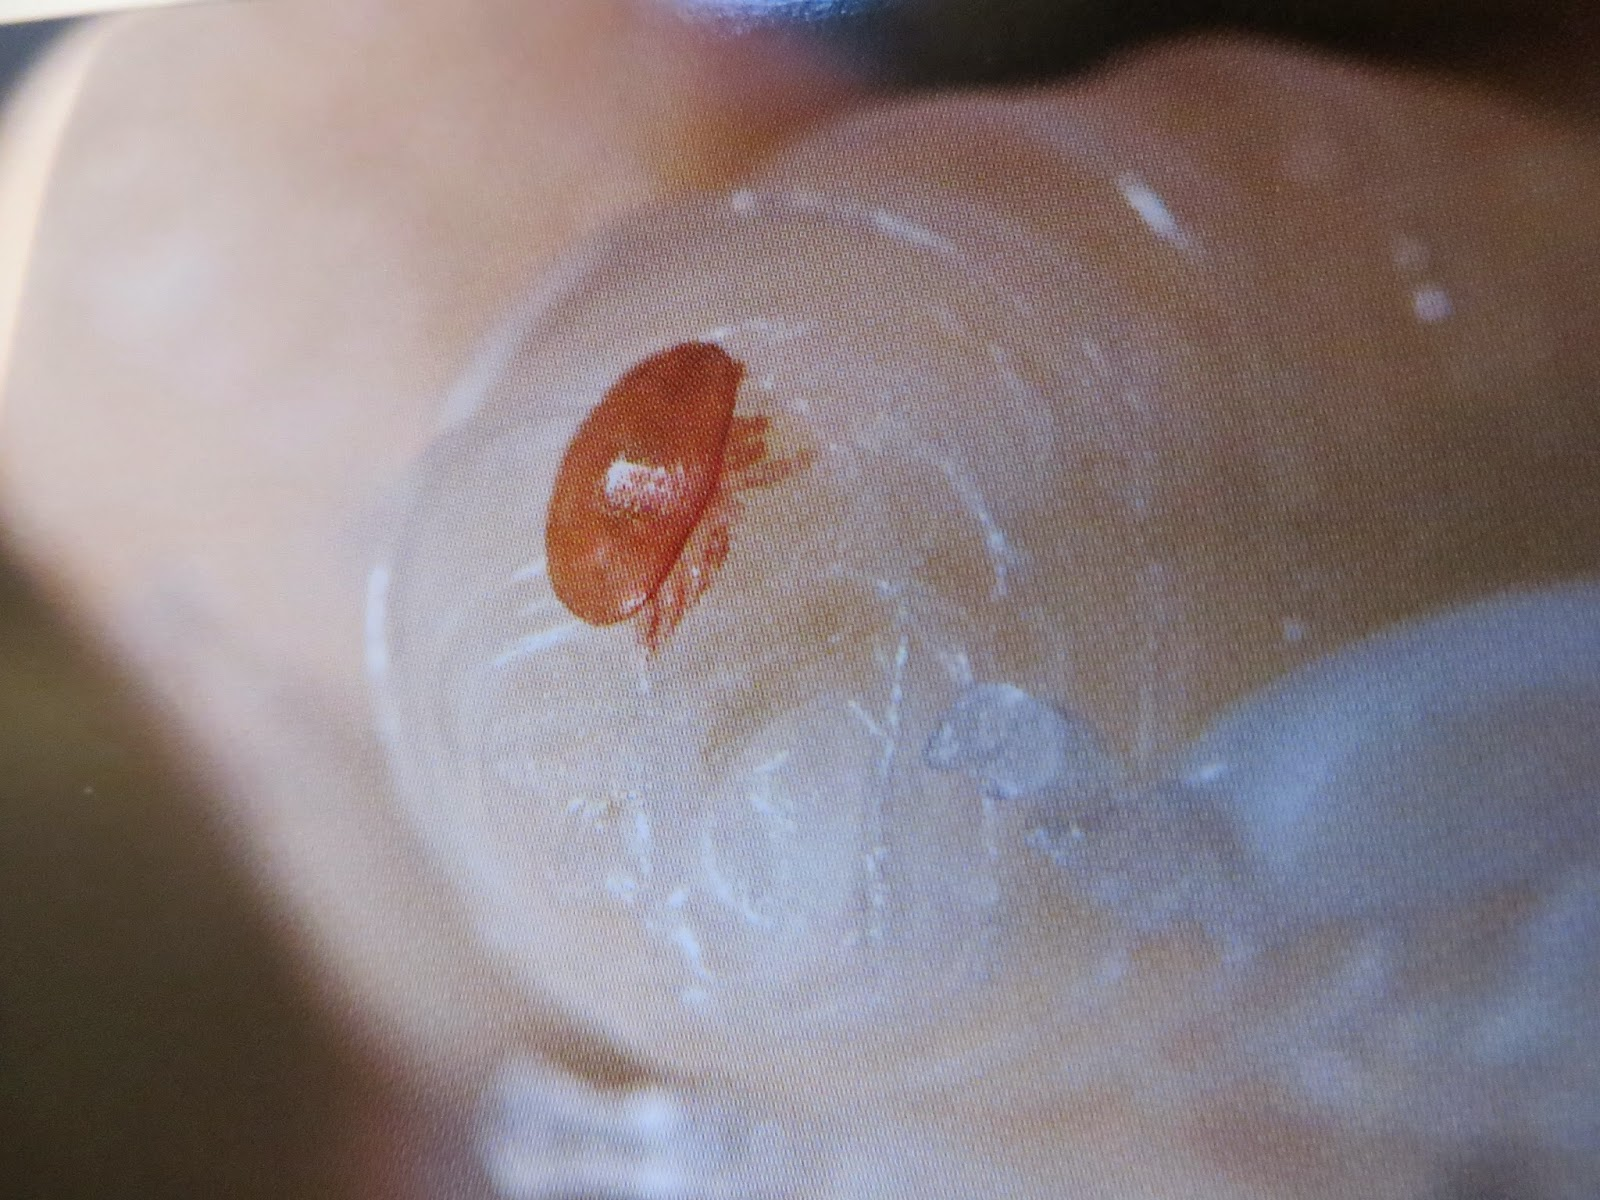 varroa mite on bee larvae